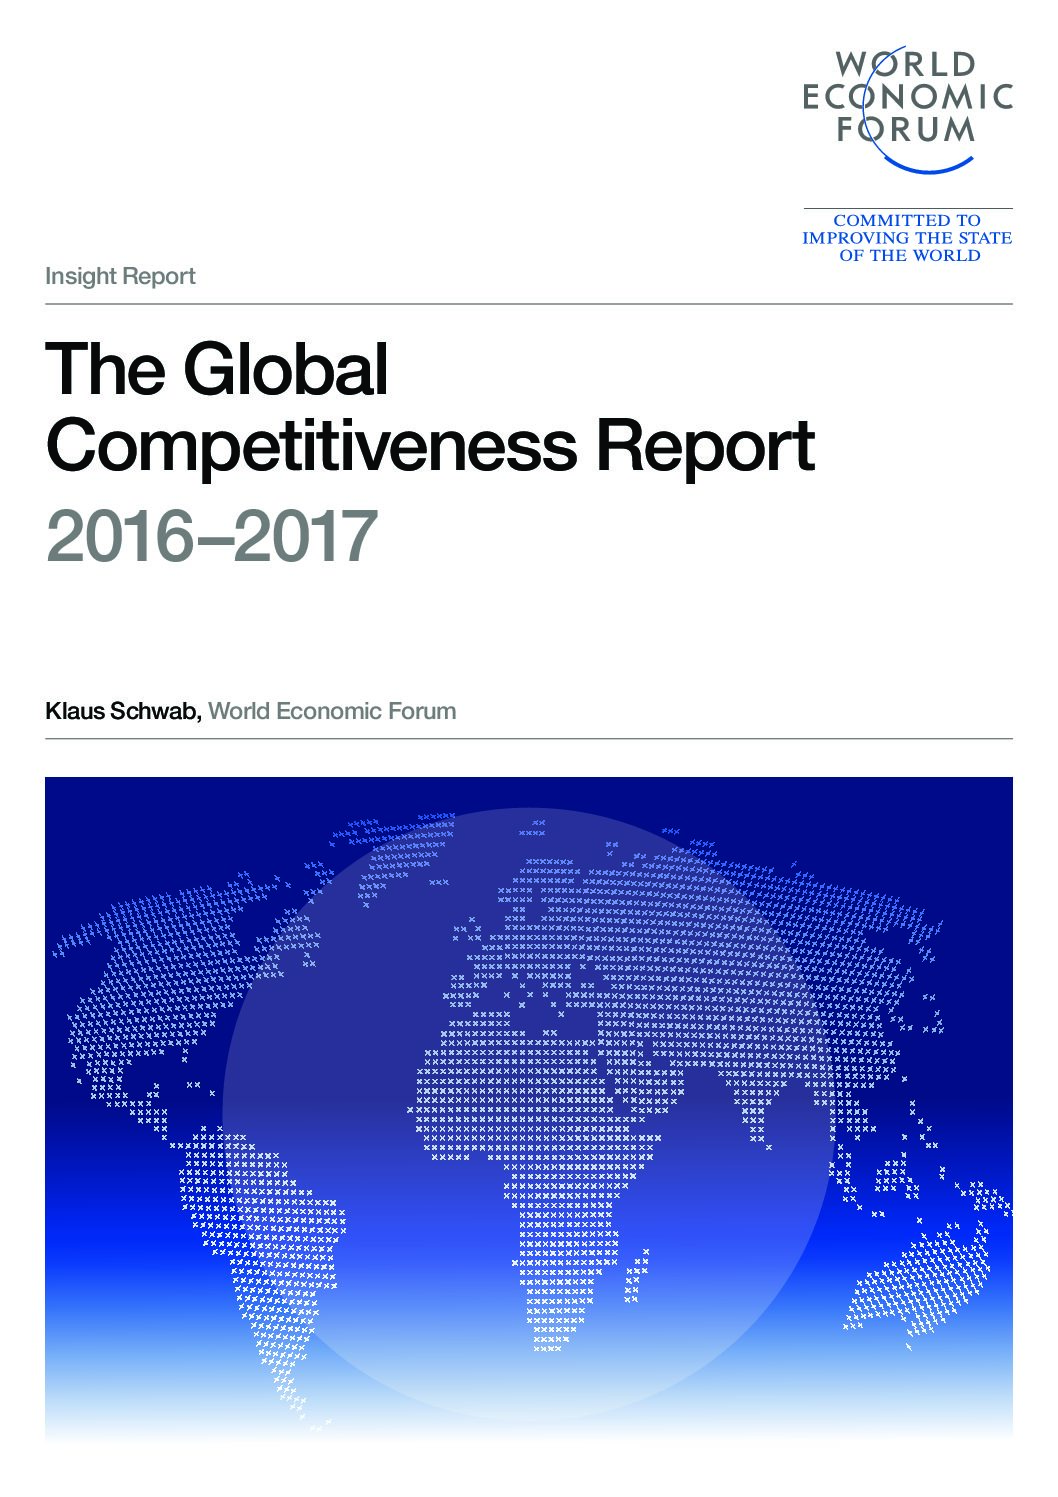 Global Competitiveness Report 2016-2017